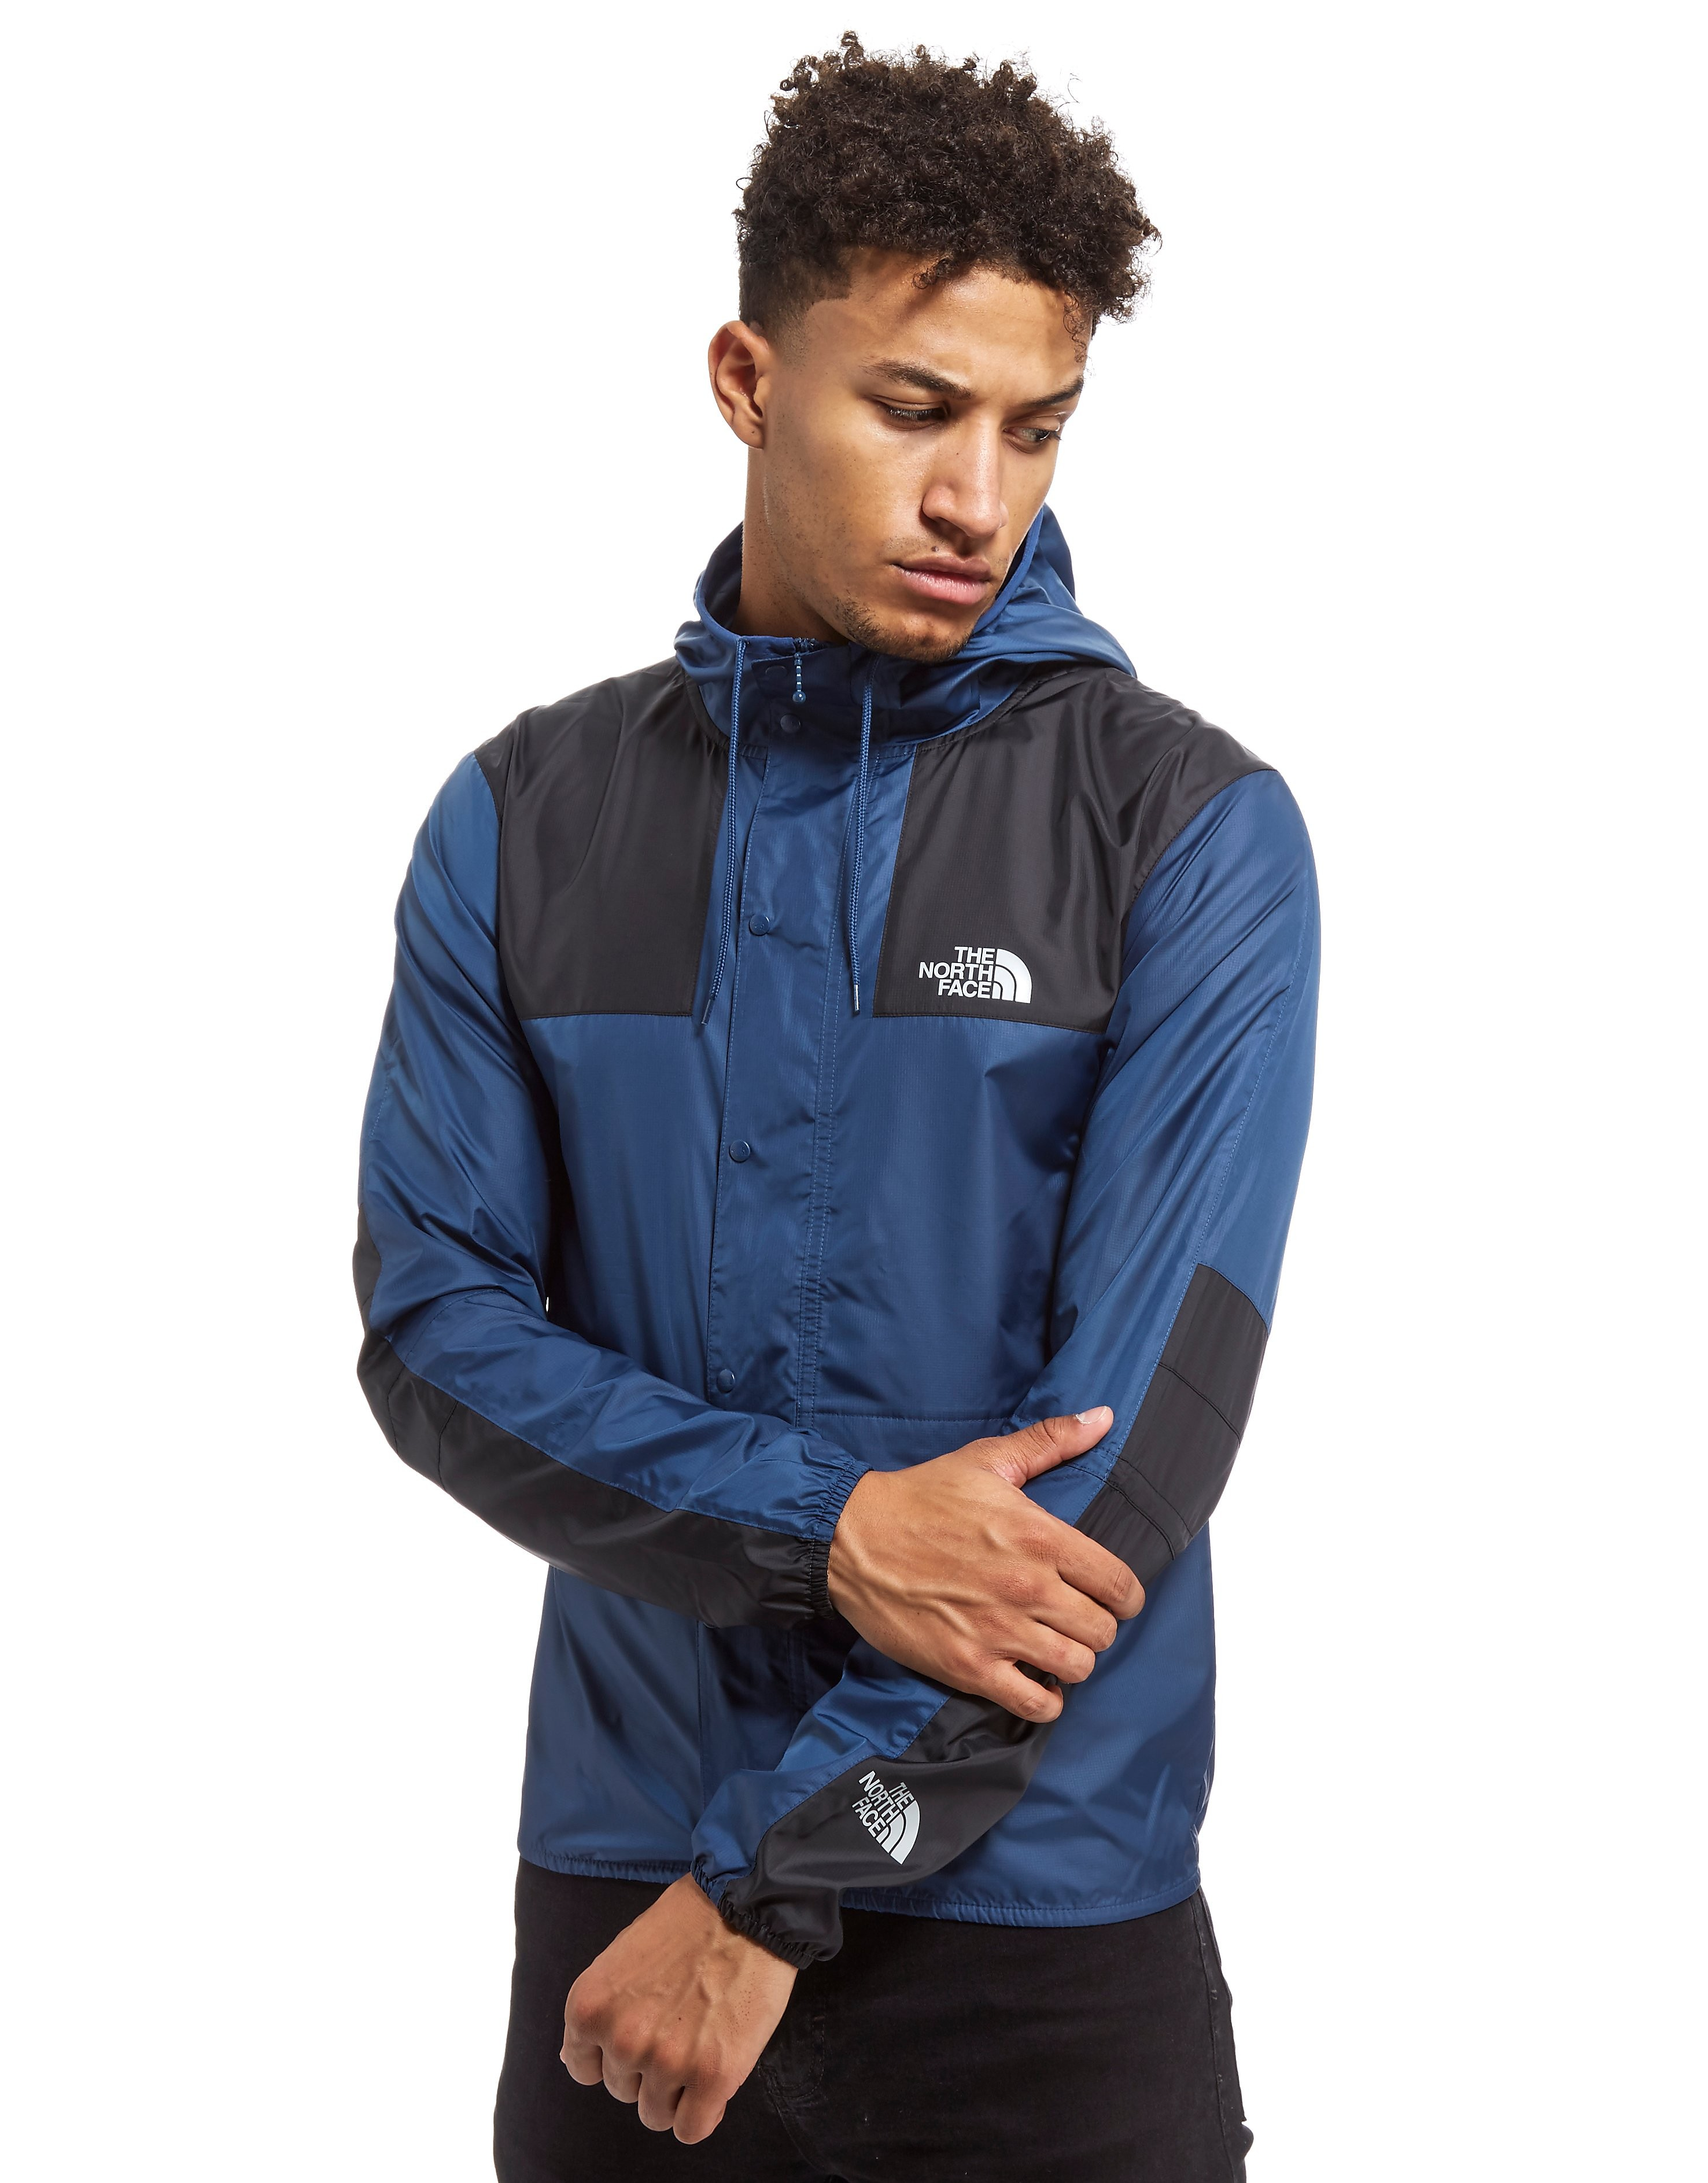 The North Face Mountain 1985 Jacket